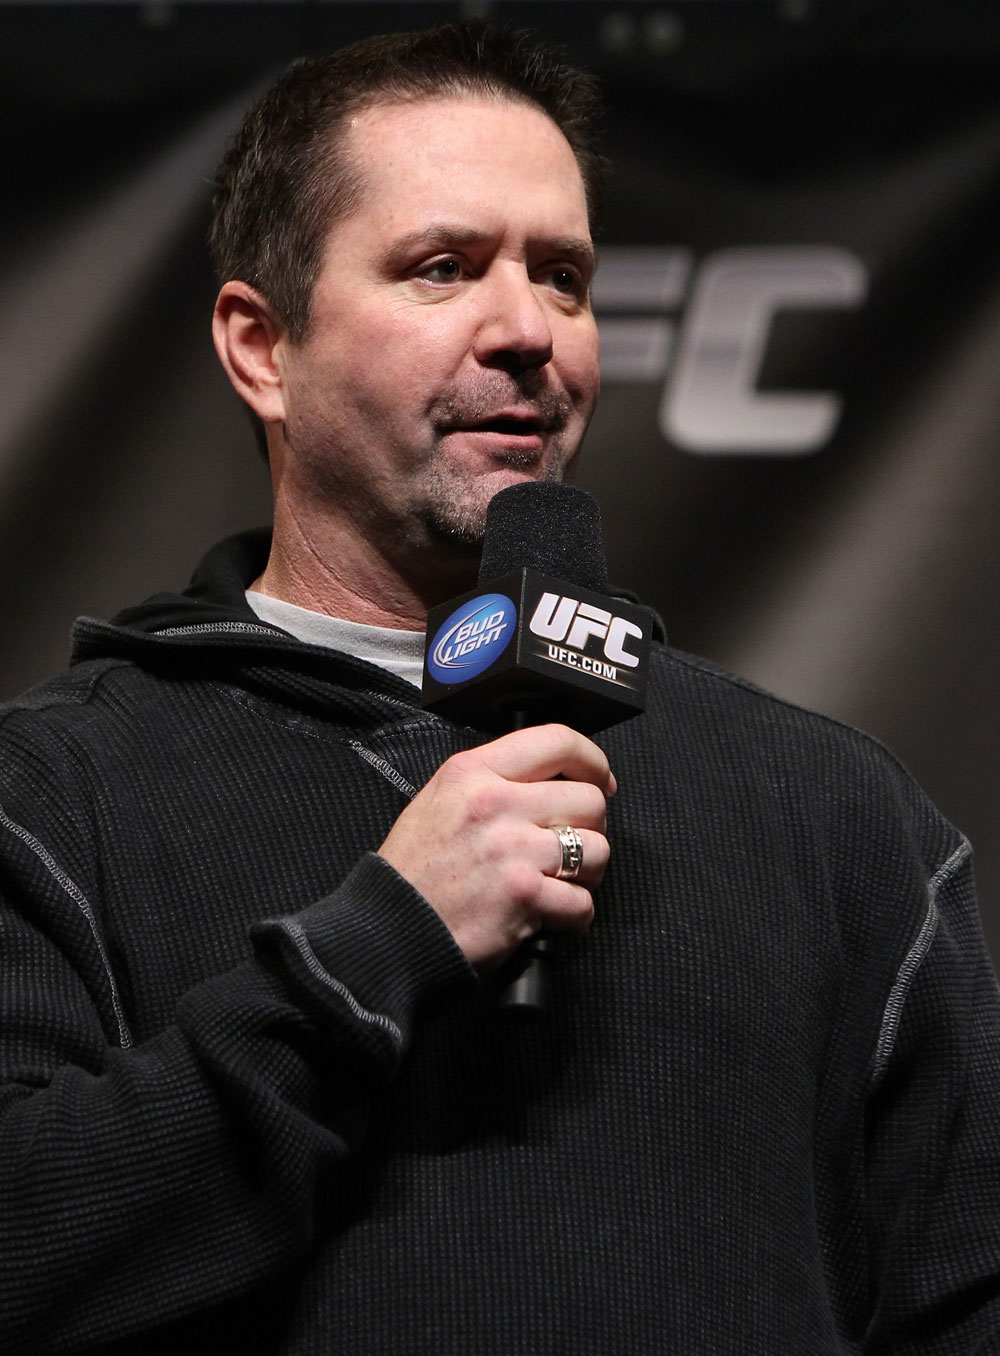 CHICAGO, IL - JANUARY 27:  UFC commentator Mike Goldberg interacts with fans during a Q&A session before the UFC on FOX official weigh in at the Chicago Theatre on January 27, 2012 in Chicago, Illinois.  (Photo by Josh Hedges/Zuffa LLC/Zuffa LLC via Getty Images) *** Local Caption *** Mike Goldberg